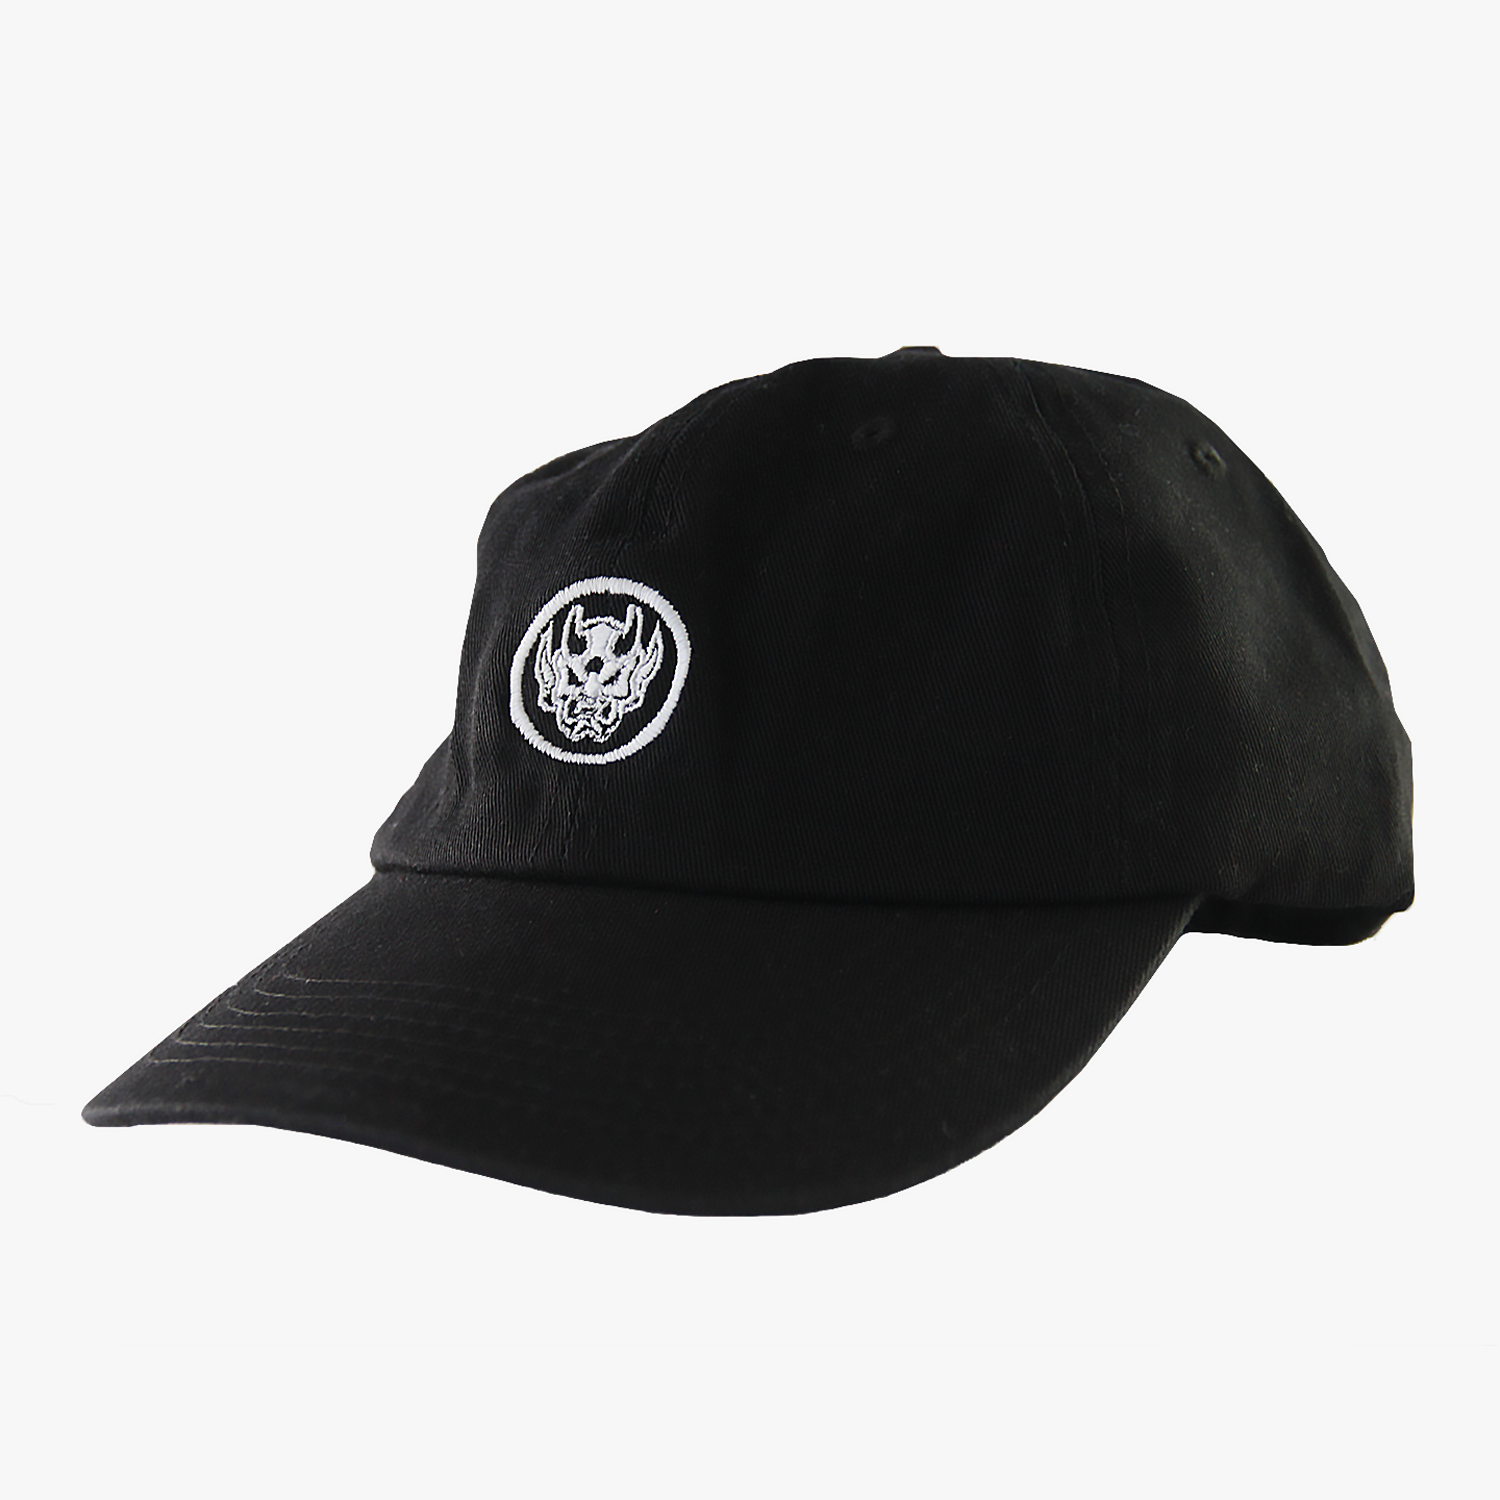 ONI SQUAD - Dad Hat        The ONI SQUAD dad hat comes with the signature ONI insignia woven on the front, and